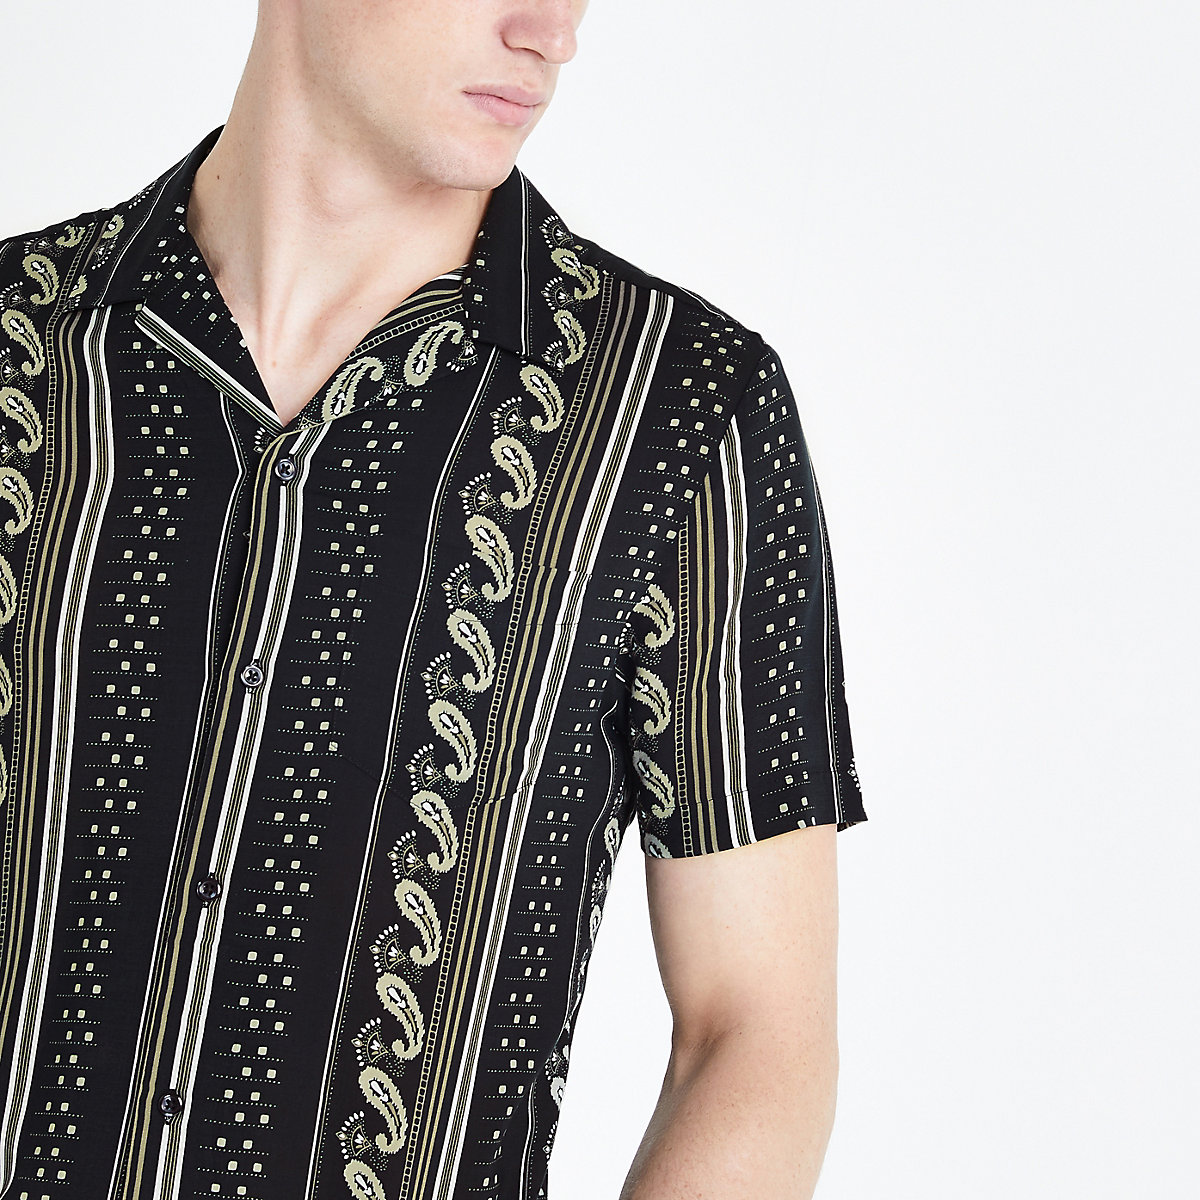 River Island short sleeve shirt - £25 - Although if you are going out, opt for a shirt from River Island's huge selection of great printed short sleeve designs